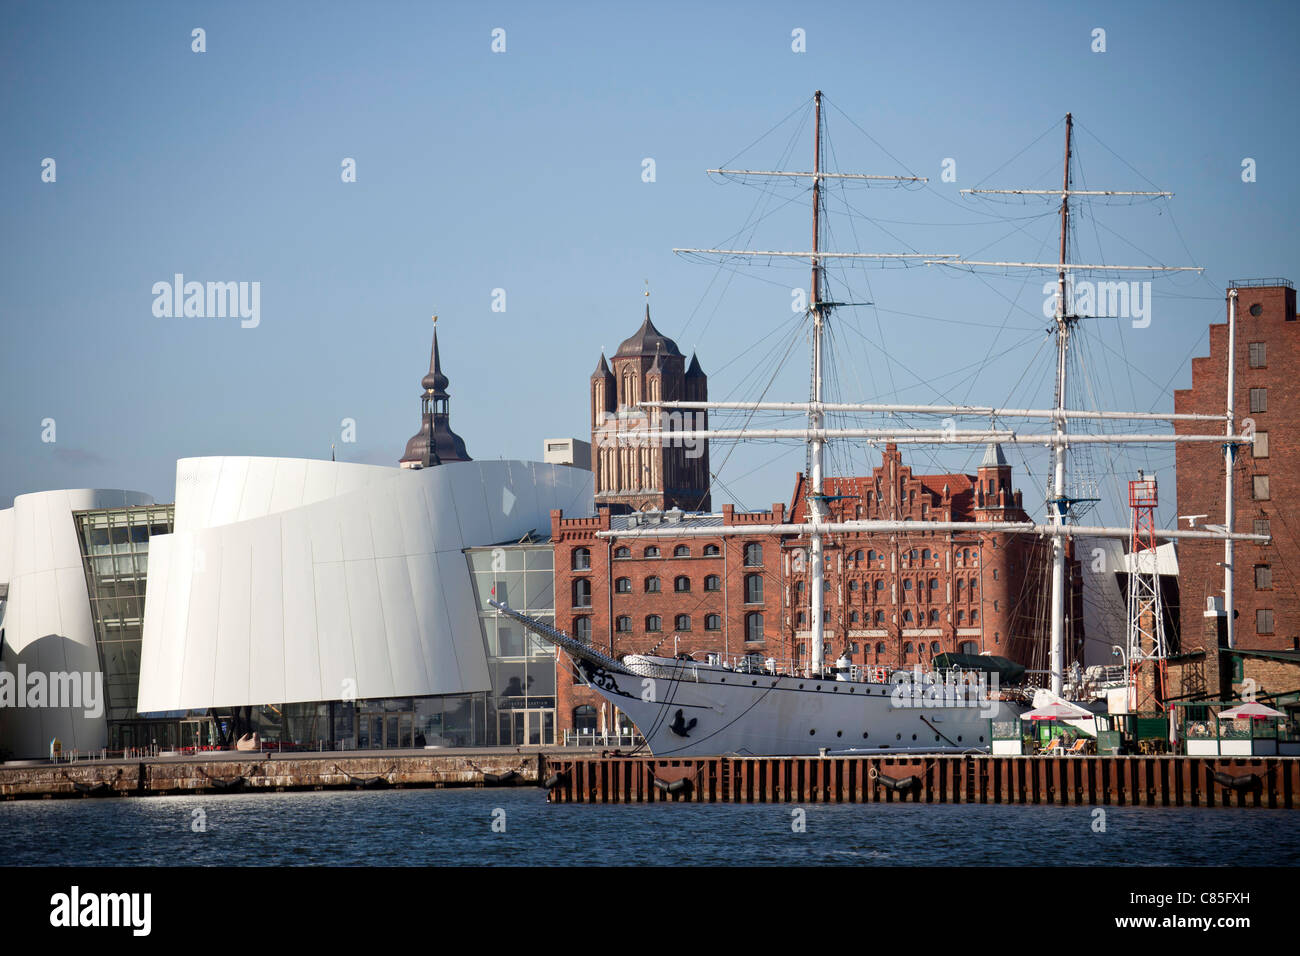 cityscape with harbor, Ozeaneum, three-mast barque Gorch Fock 1 and Saint James's Church in the Hanseatic City - Stock Image